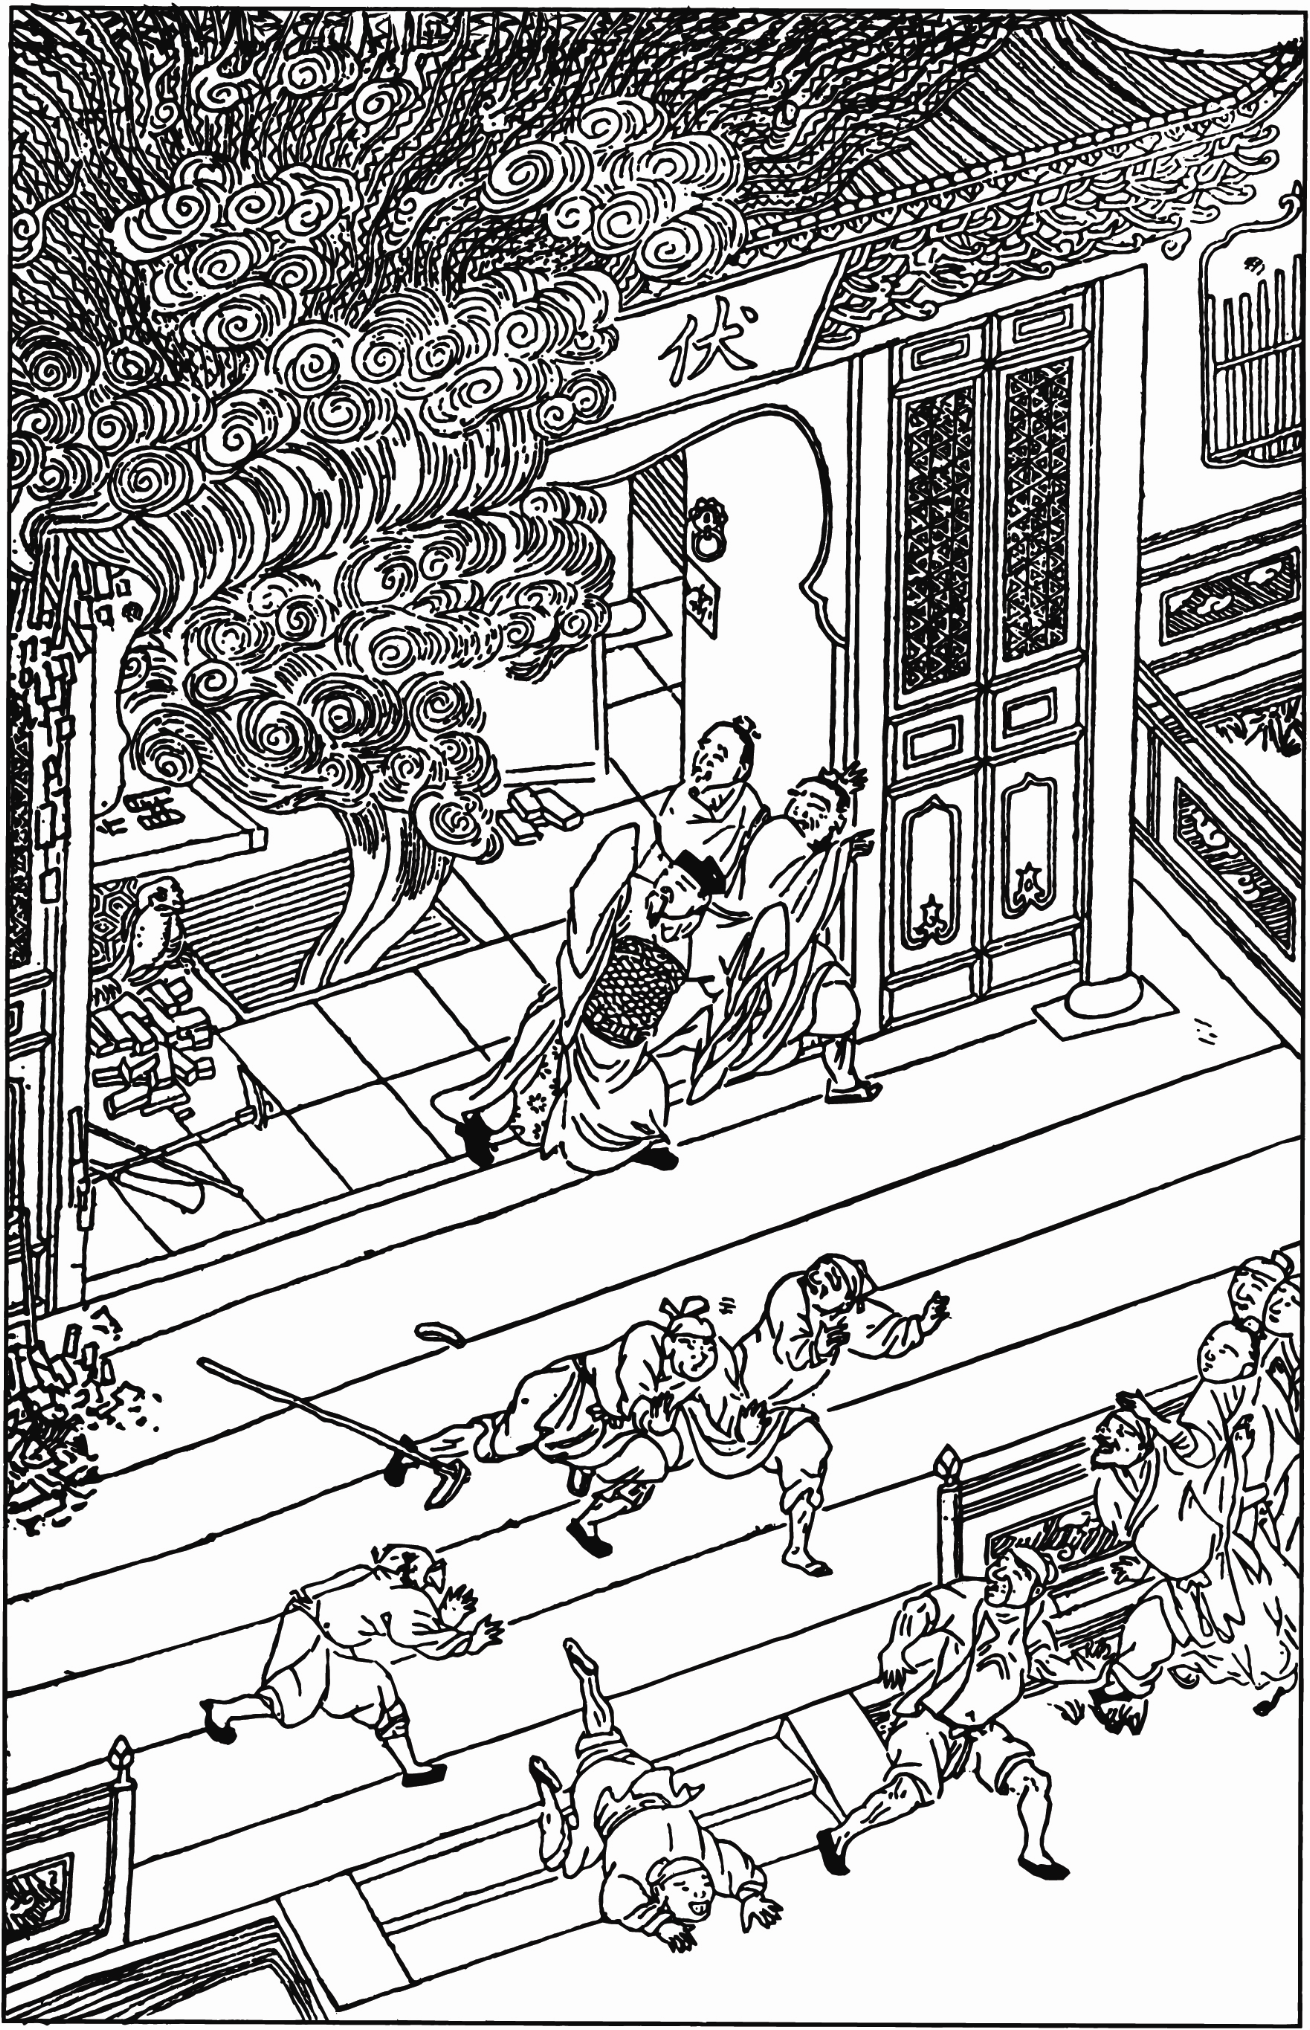 The opening scene of Outlaws of the Marsh (Shuihu Zhuan);108 Demons being released from a well. Through the practice of Kung Fu they become righteous heroes and eventually they found a new country.